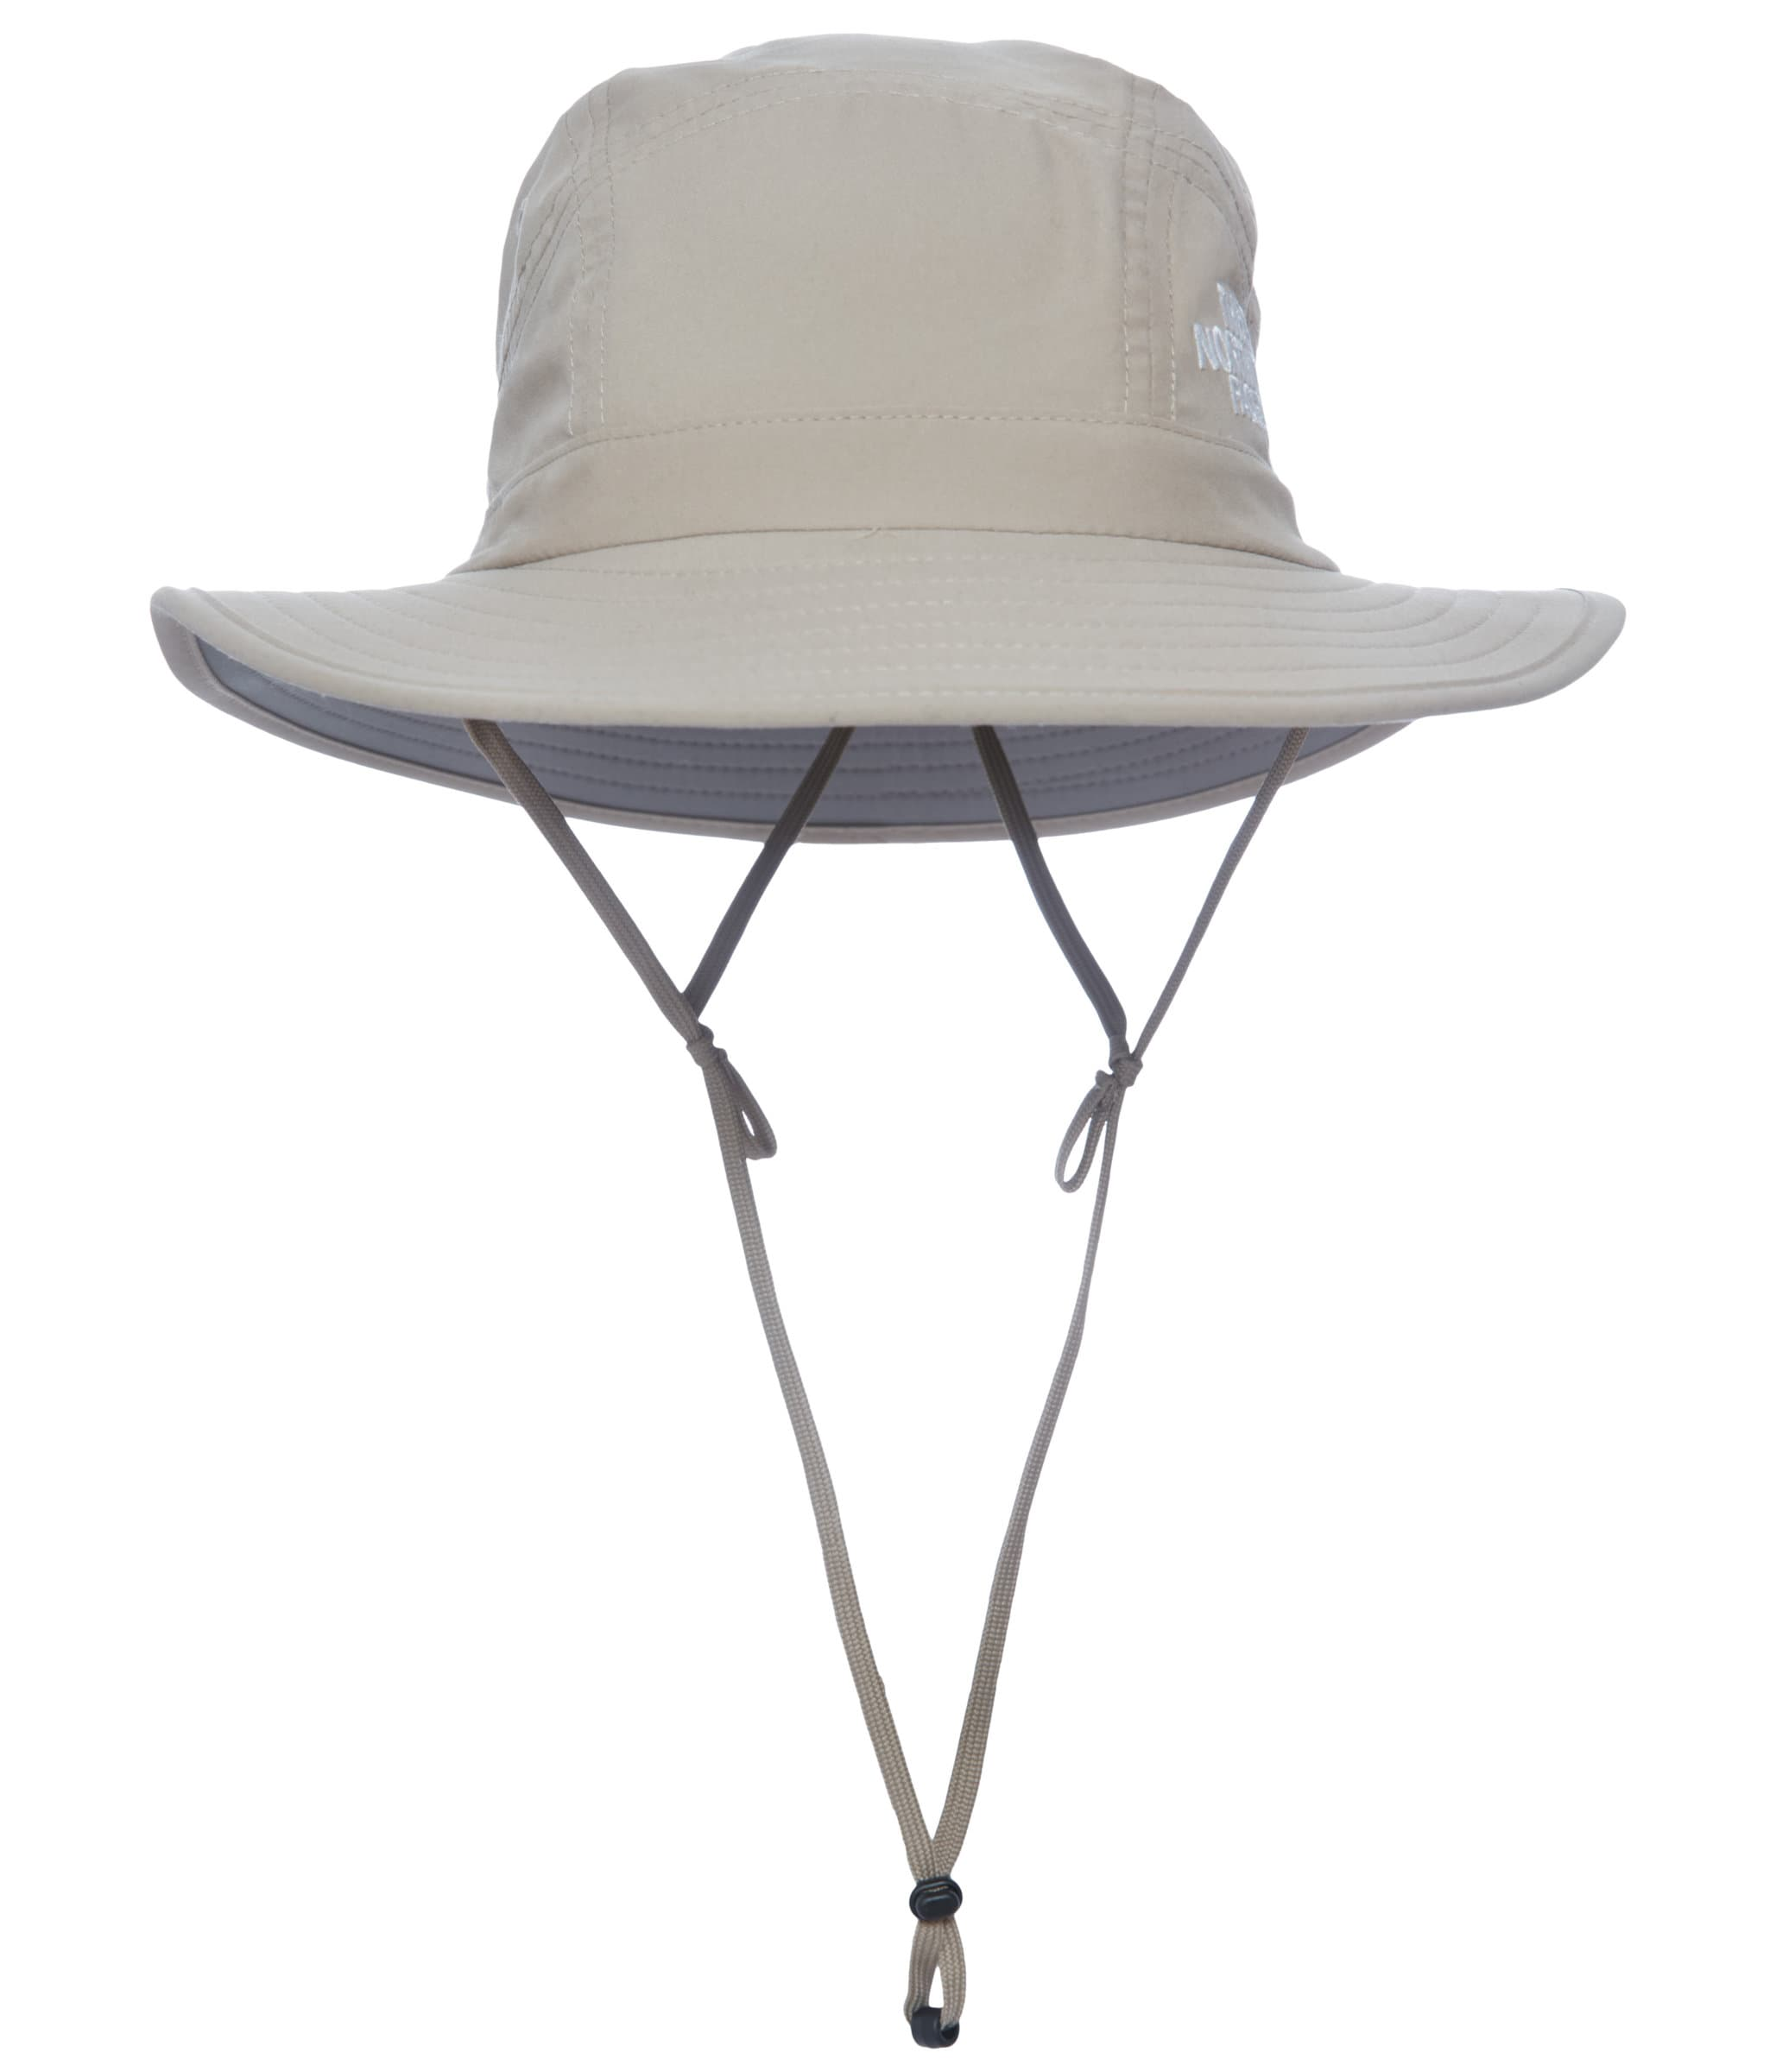 The North Face Suppertime Cappello unisex